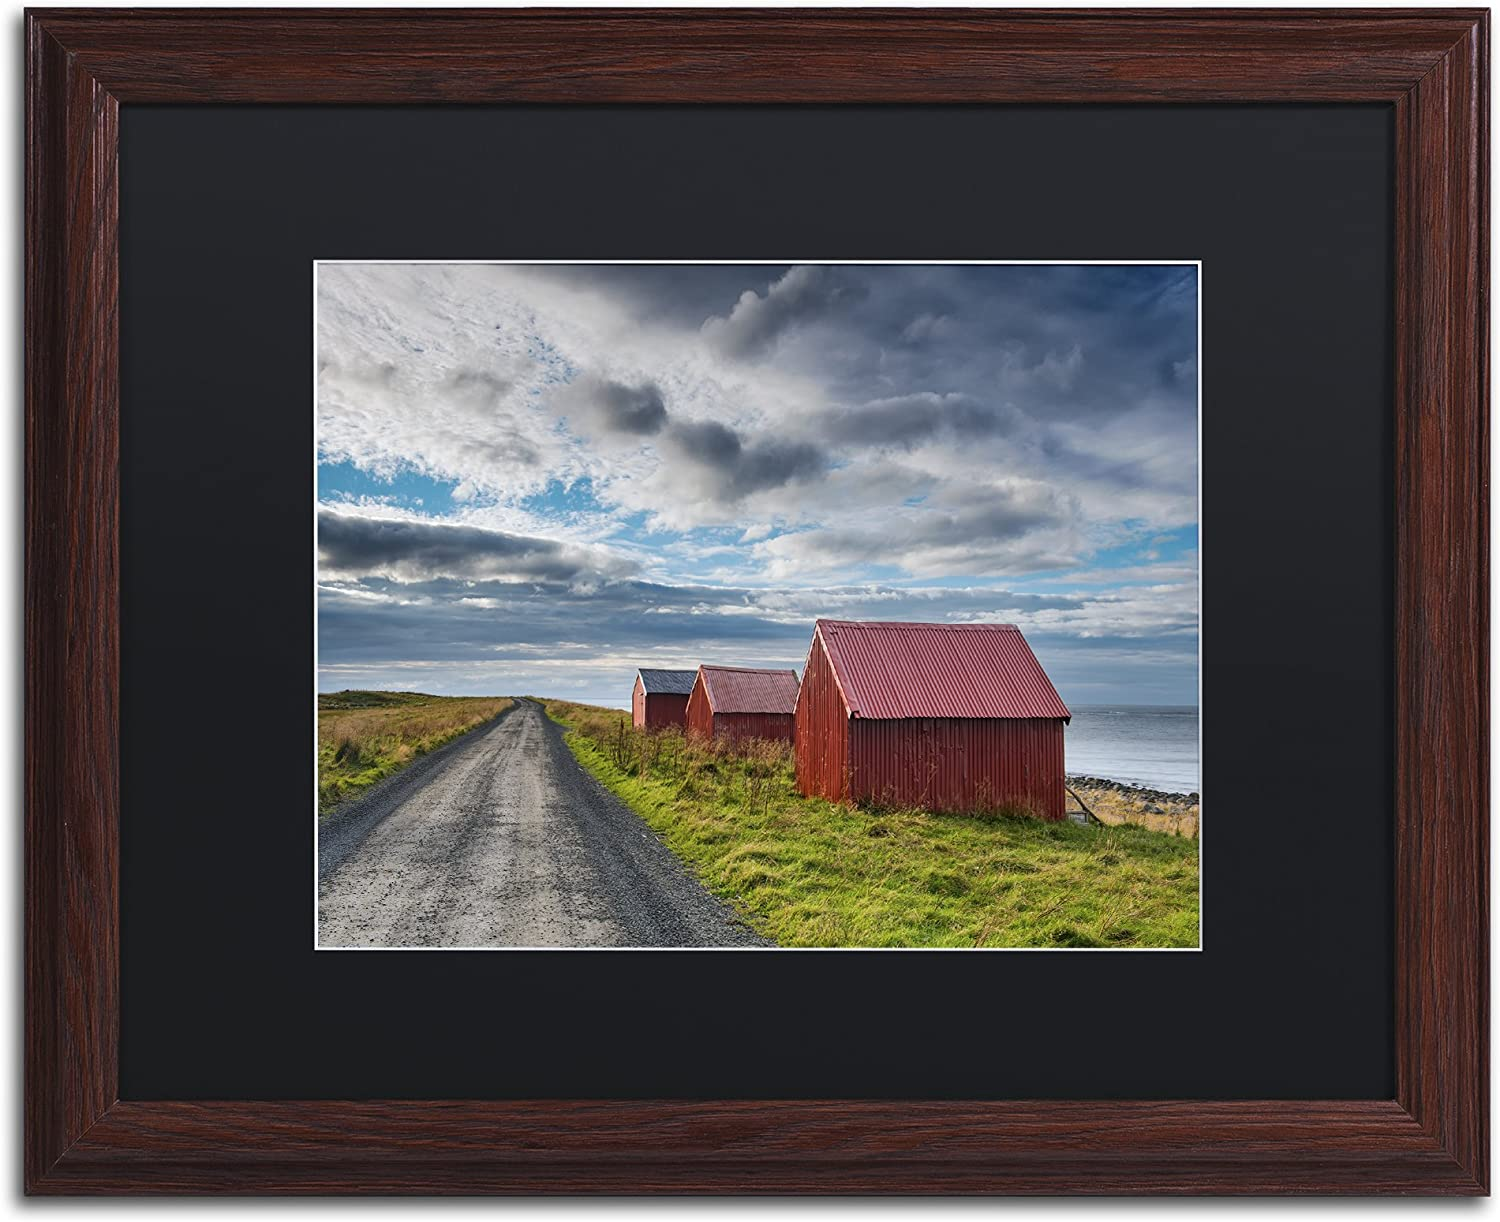 Three In A Row By Michael Blanchette Photography Artwork In Black Matte With Wood Frame 16 X 20 Home Kitchen